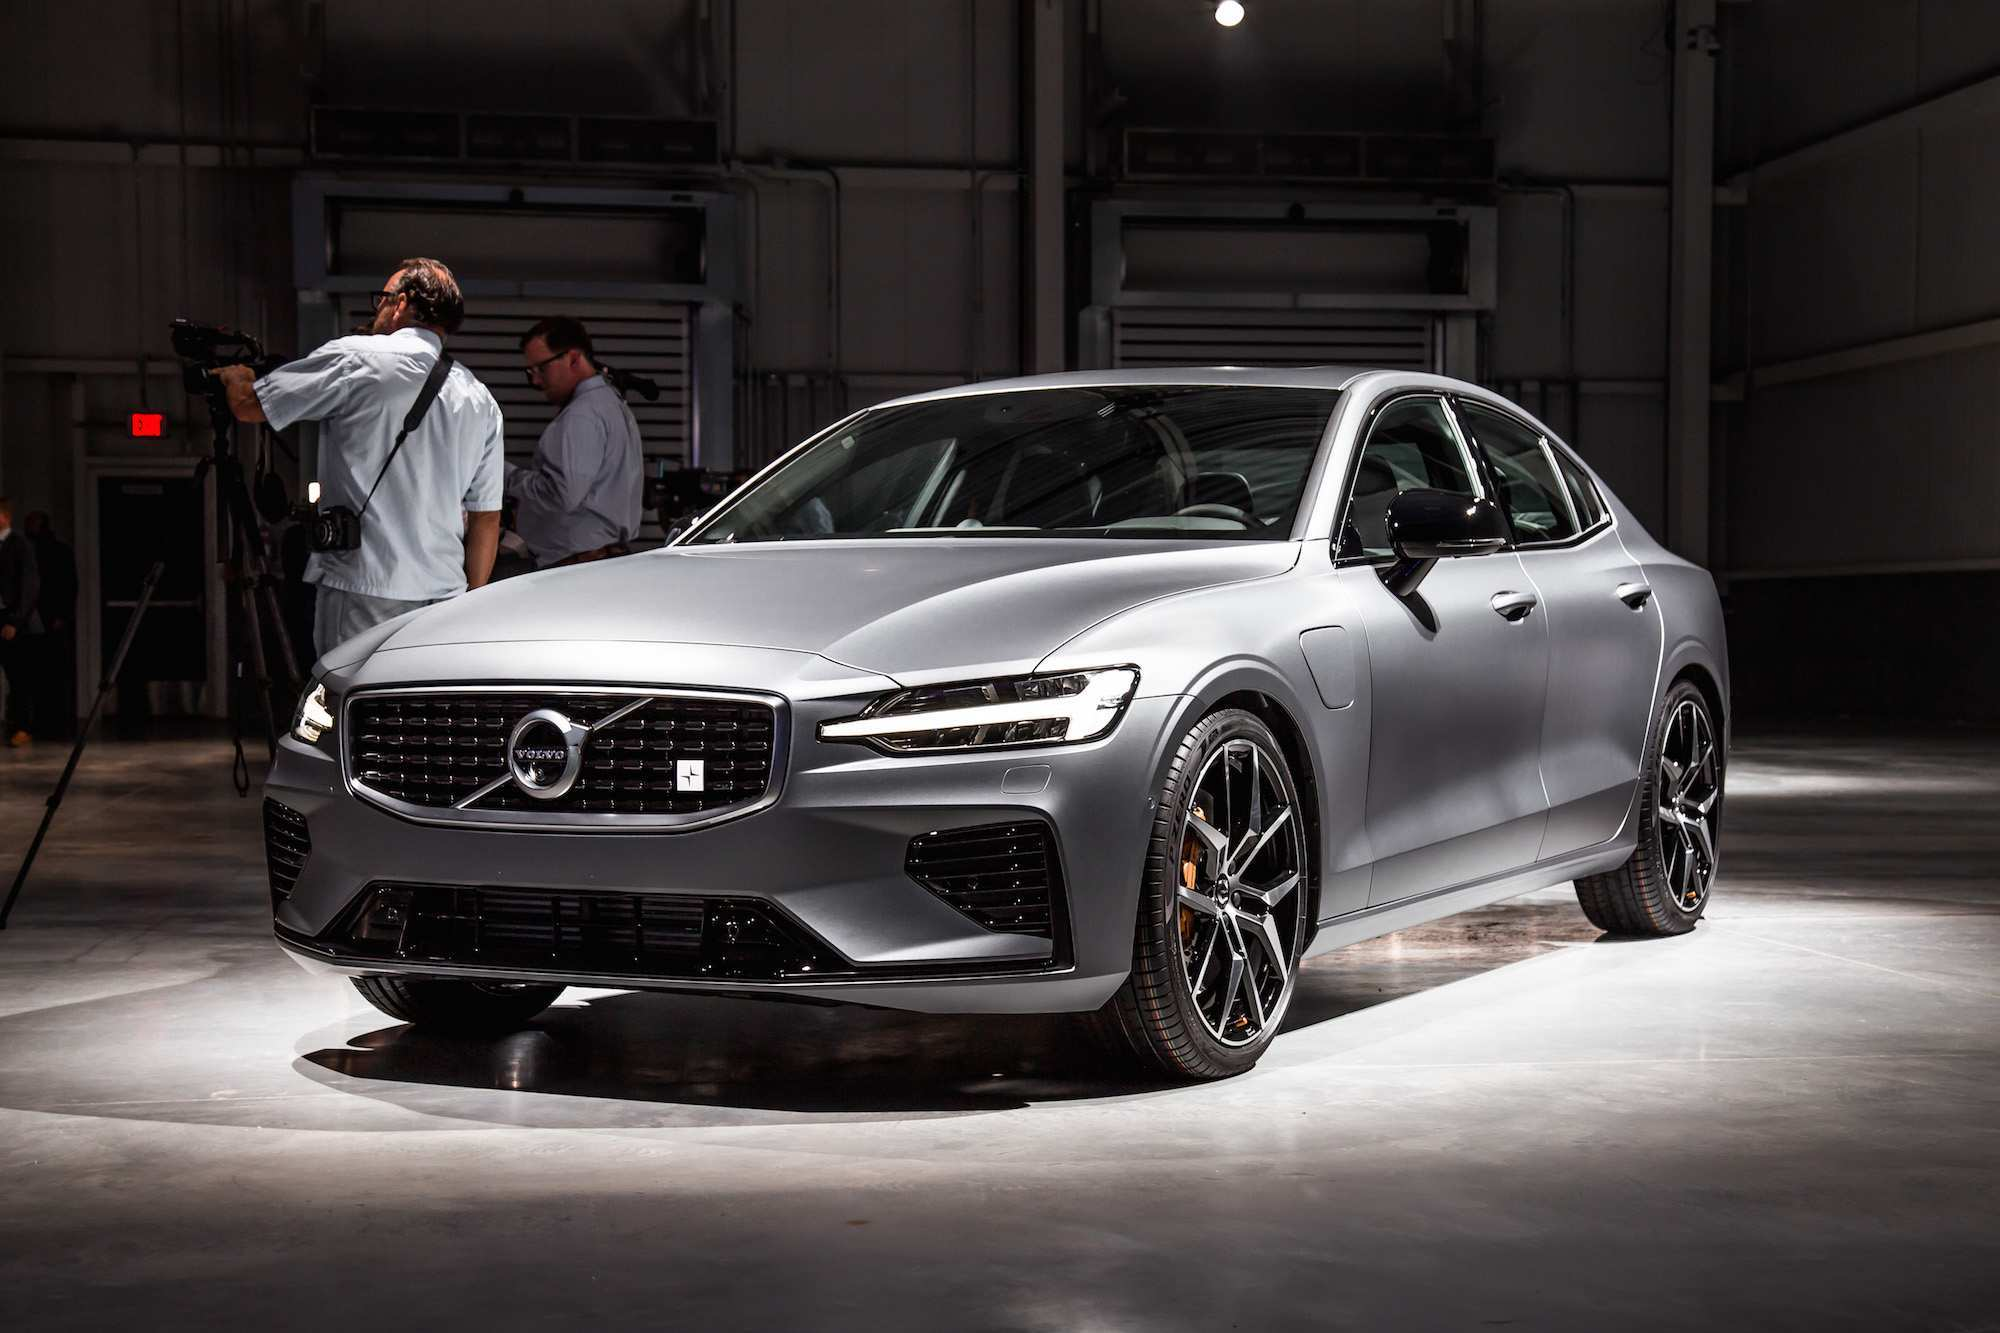 56 The 2019 Volvo V60 Polestar Exterior and Interior with 2019 Volvo V60 Polestar